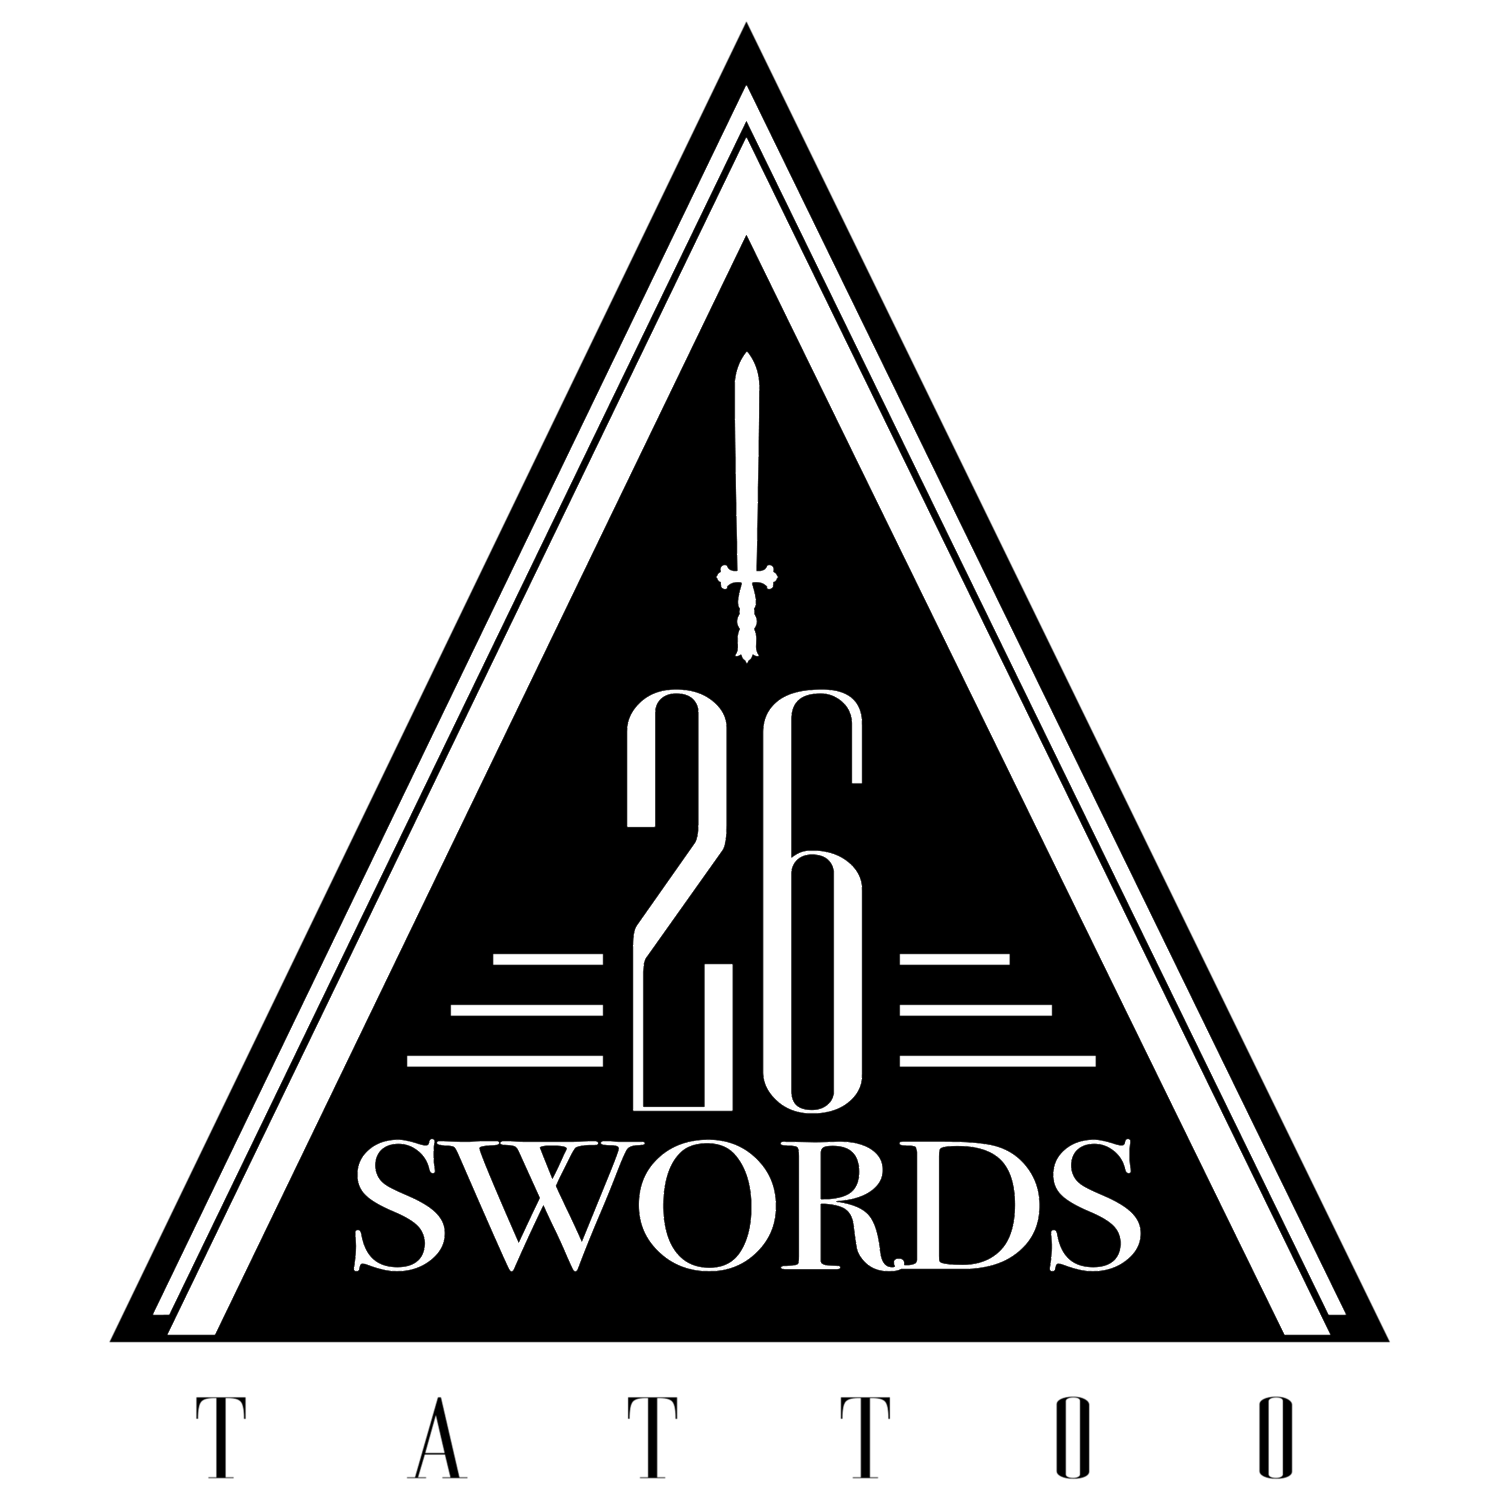 Twenty Six Swords Tattoo